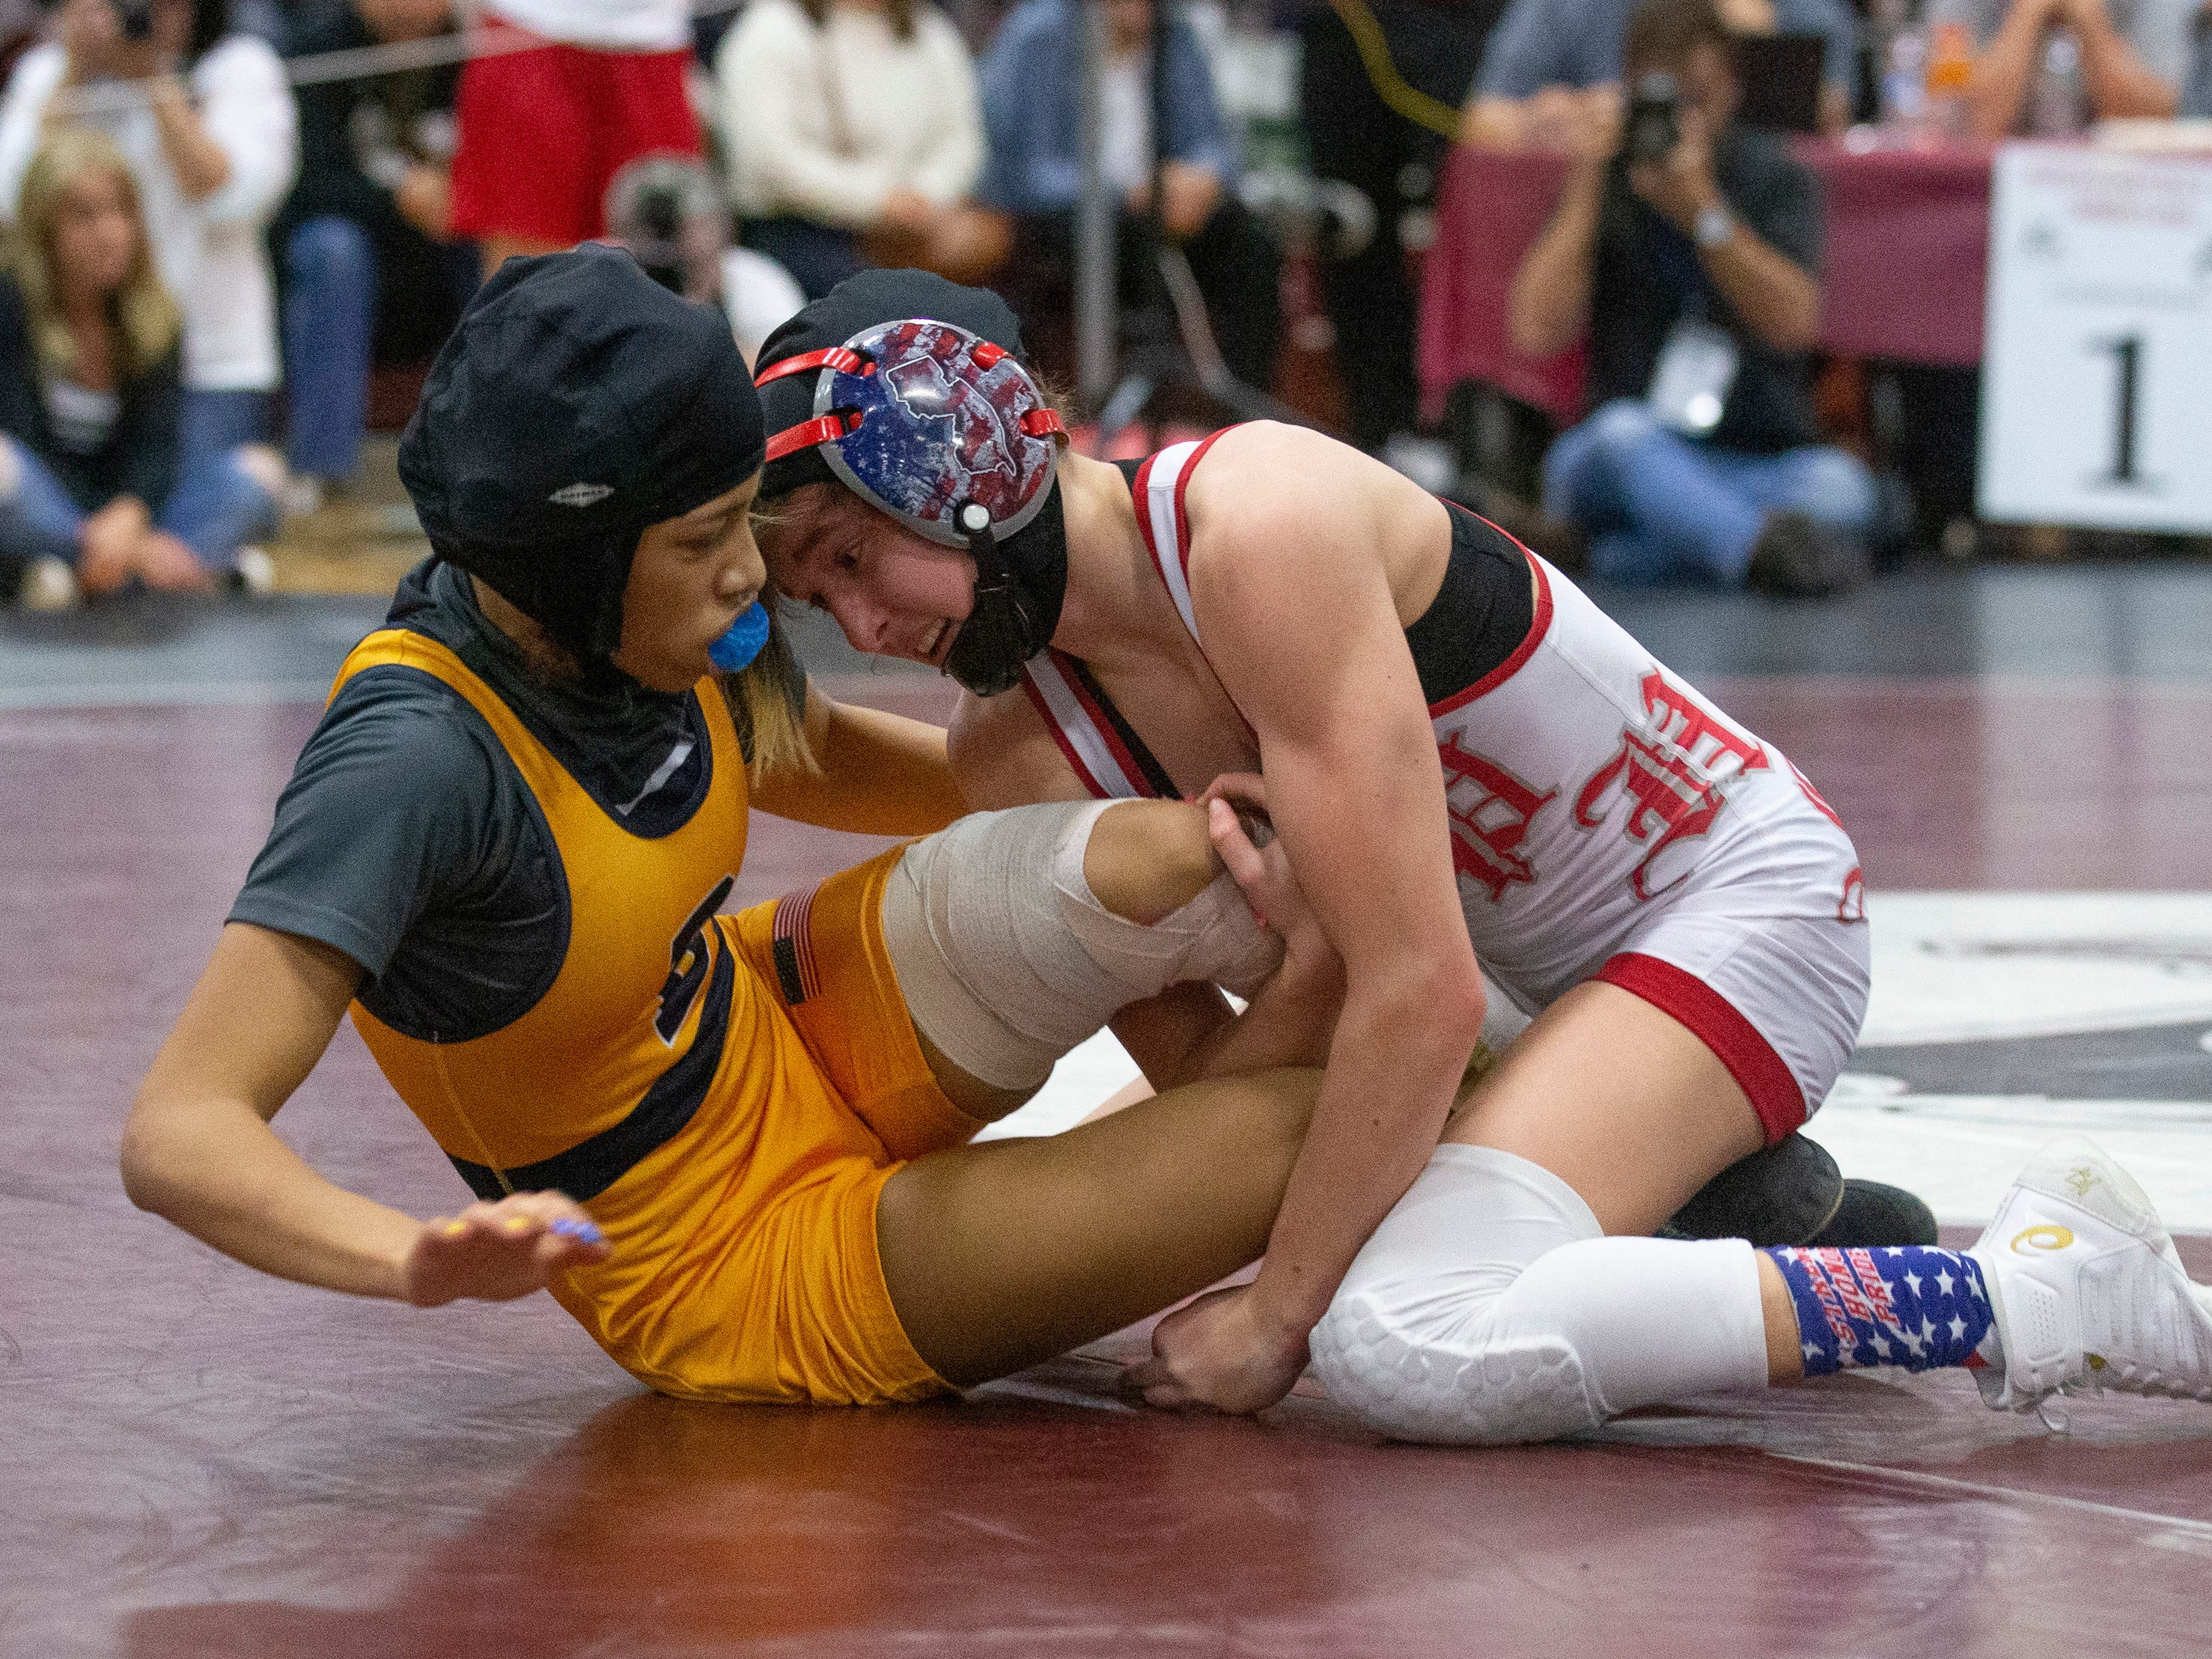 Parsippany's Sydney Petzinger works to control Belleville's Alisa Saffold in their 100 lbs North Region bout. NJSIAA Girls Region Wrestling at Red Bank Regional High School in Red Bank NJ on February 17, 2019.